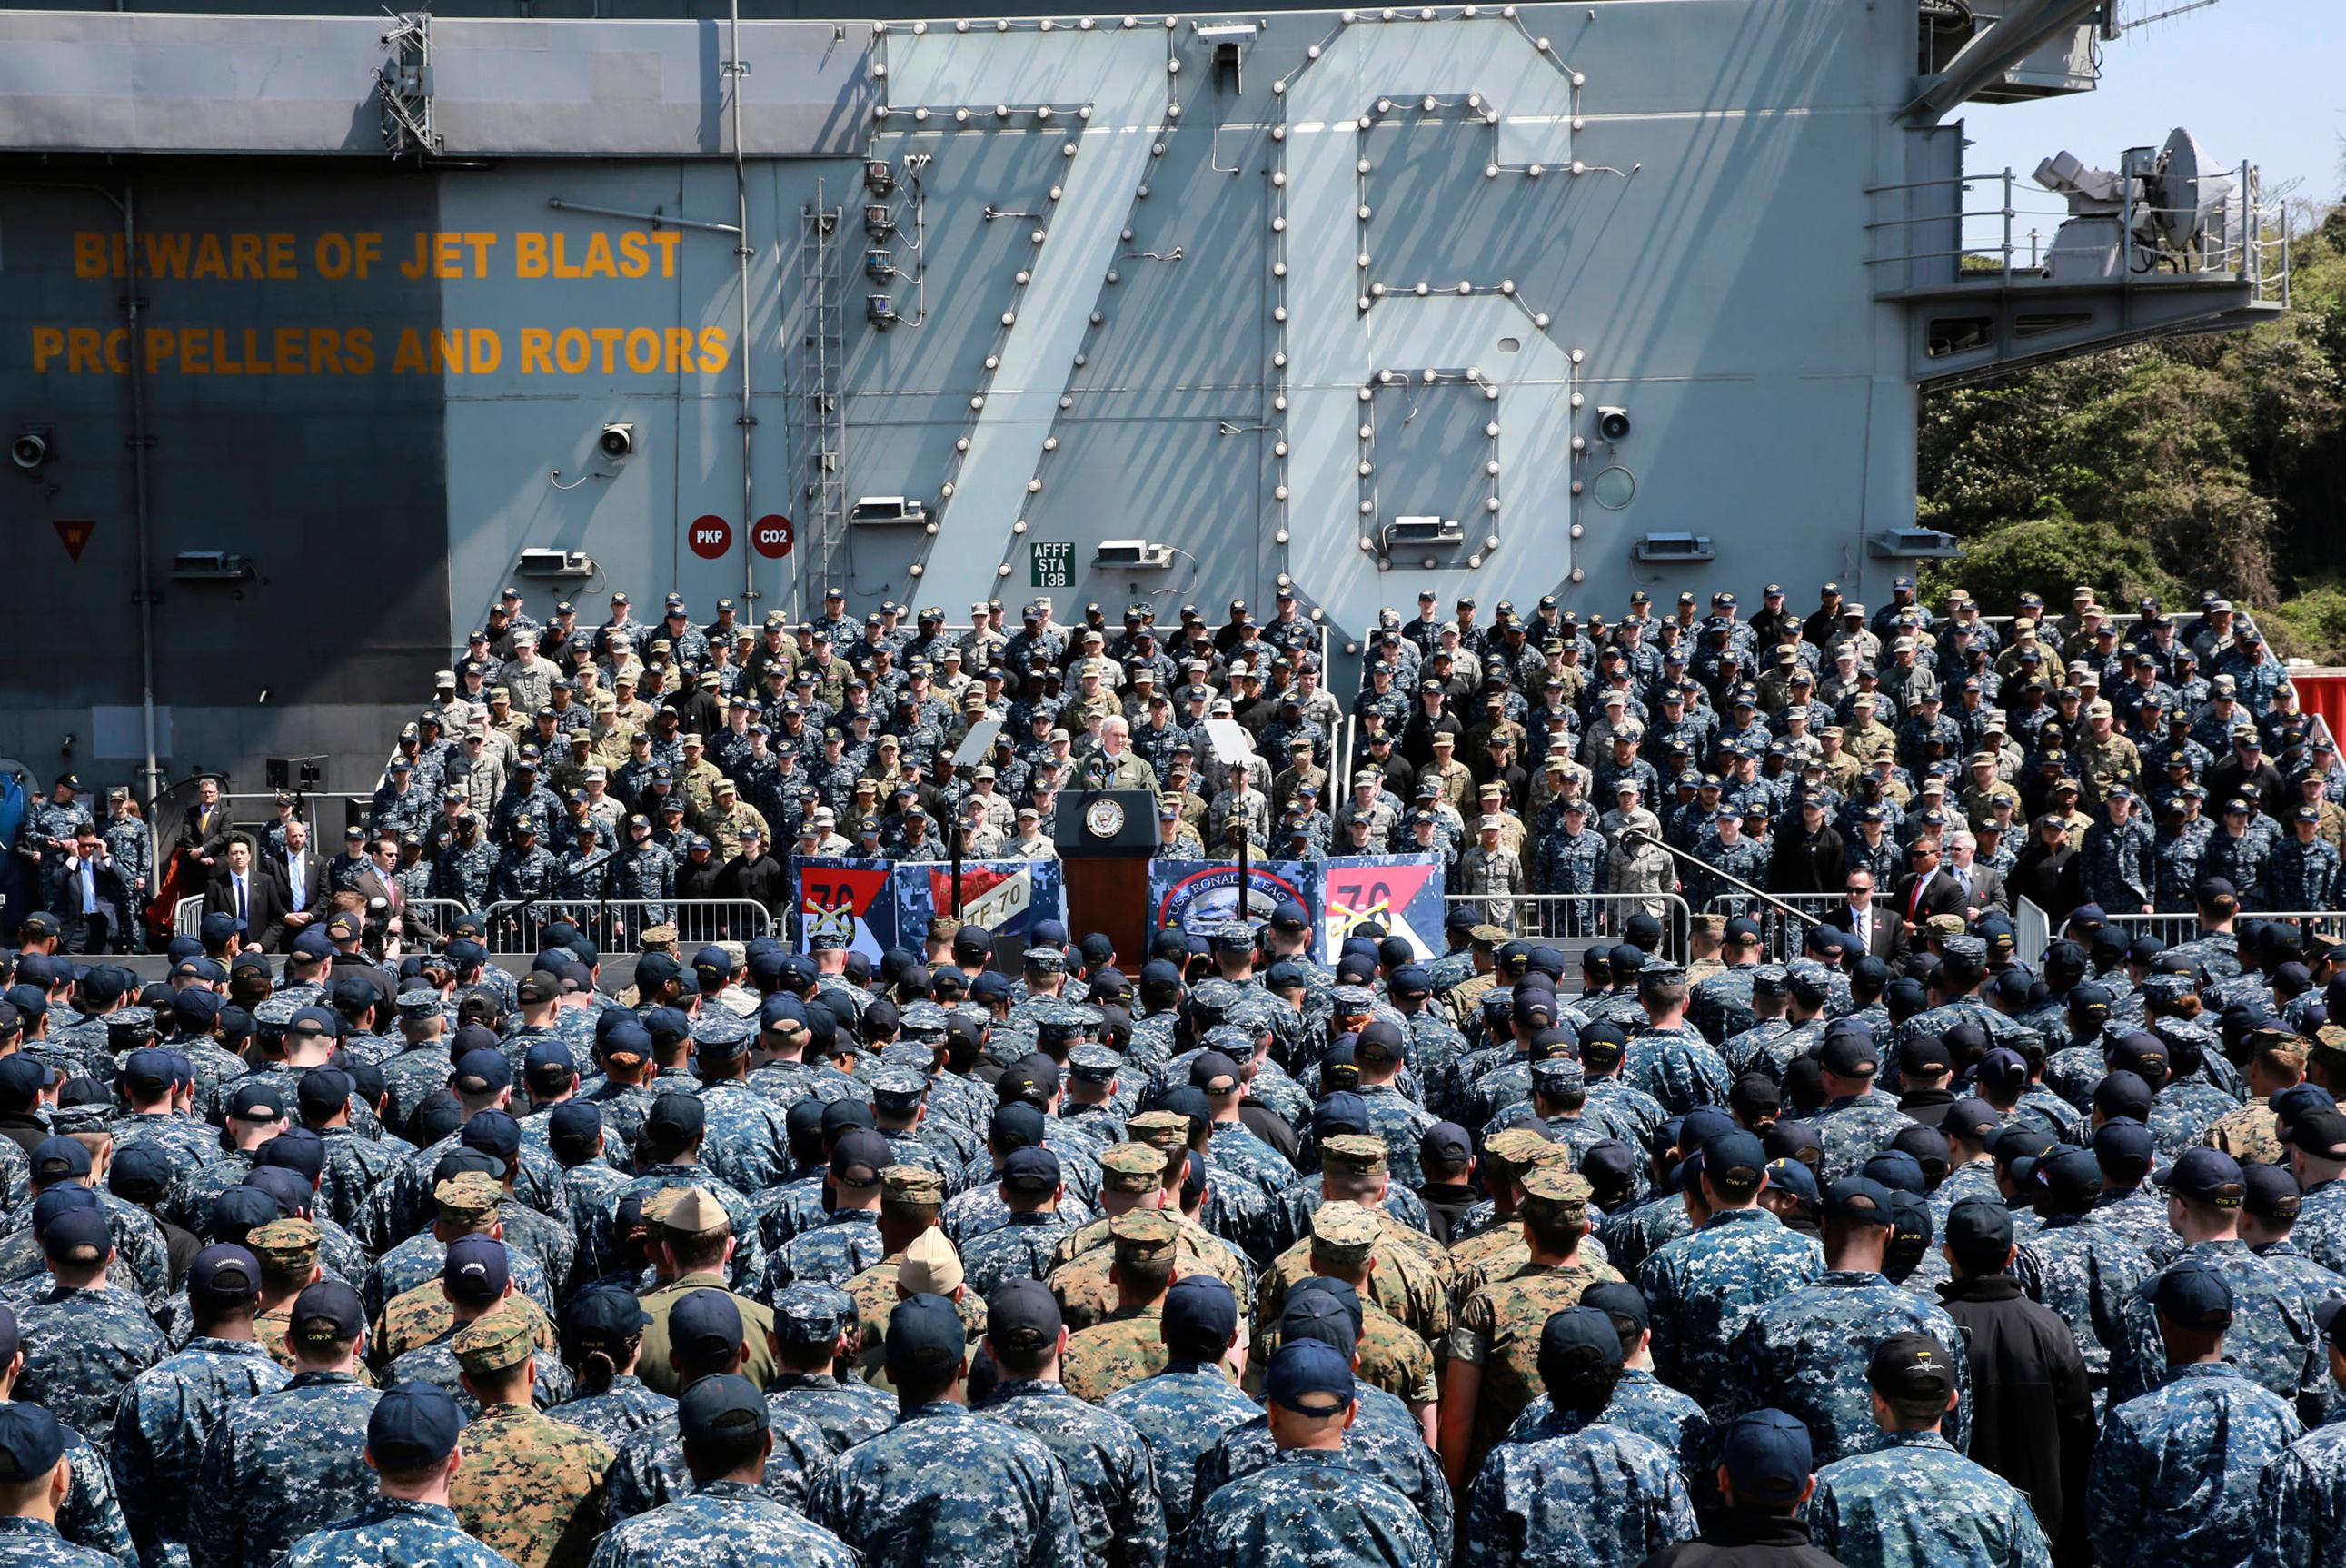 U.S. Vice President Mike Pence, center, speaks to U.S. servicemen and Japanese Self-Defense Forces personnel on the flight deck of U.S. navy nuclear-powered aircraft carrier USS Ronald Reagan, at the U.S. Navy's Yokosuka base in Yokosuka, south of Tokyo, Wednesday, April 19, 2017. Japan is drawing up emergency responses in case of a North Korea missile strike. A number of municipalities are testing community alarm systems and planning evacuation drills as concerns run high around U.S. military bases. Both Japan and South Korea are home to tens of thousands of U.S. troops. (AP Photo/Eugene Hoshiko)